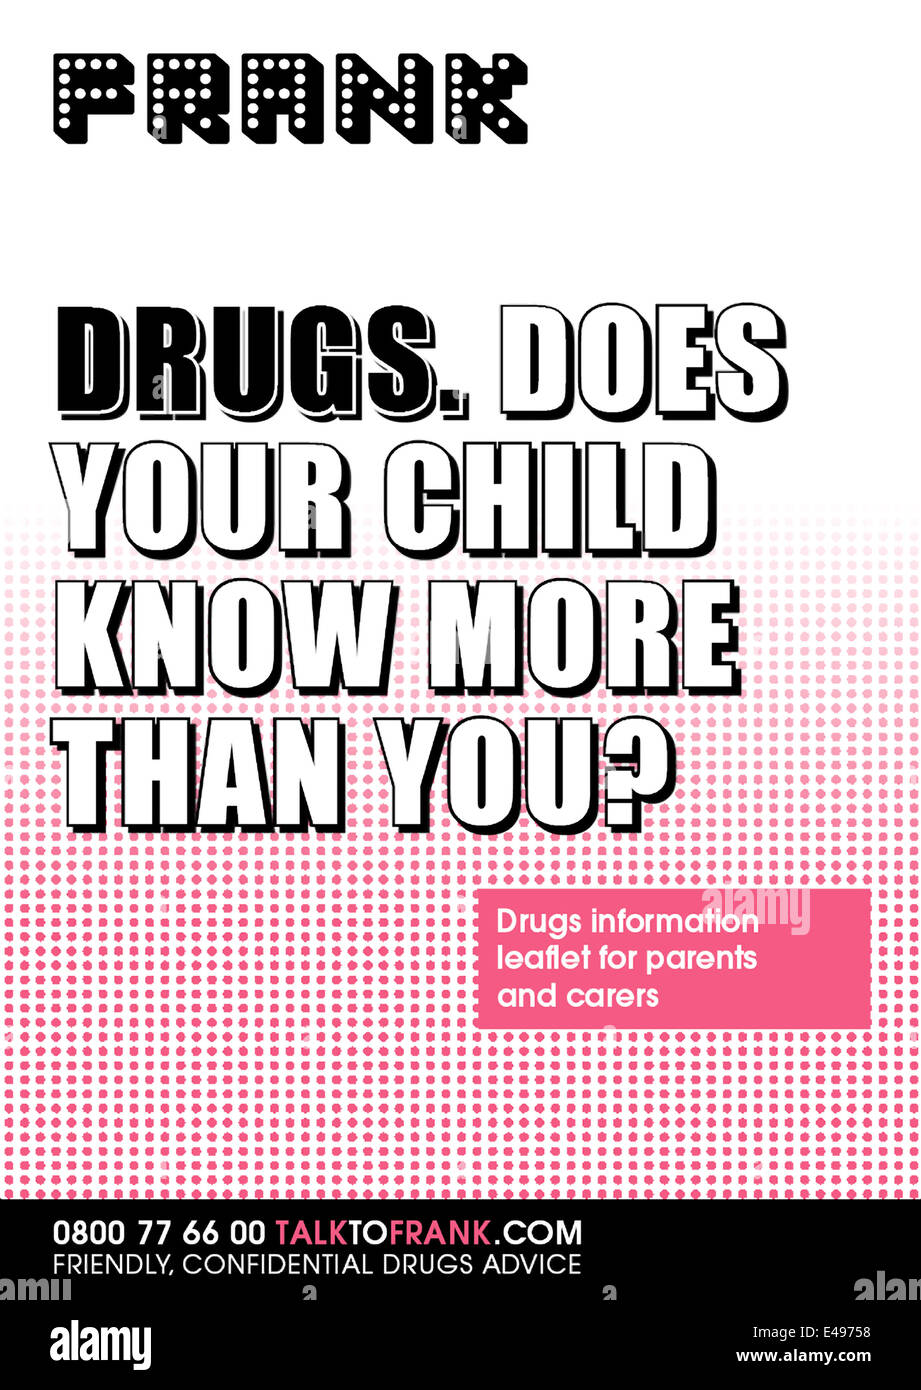 Drug information awareness raising poster released in January 2012 as part  of the FRANK anti-